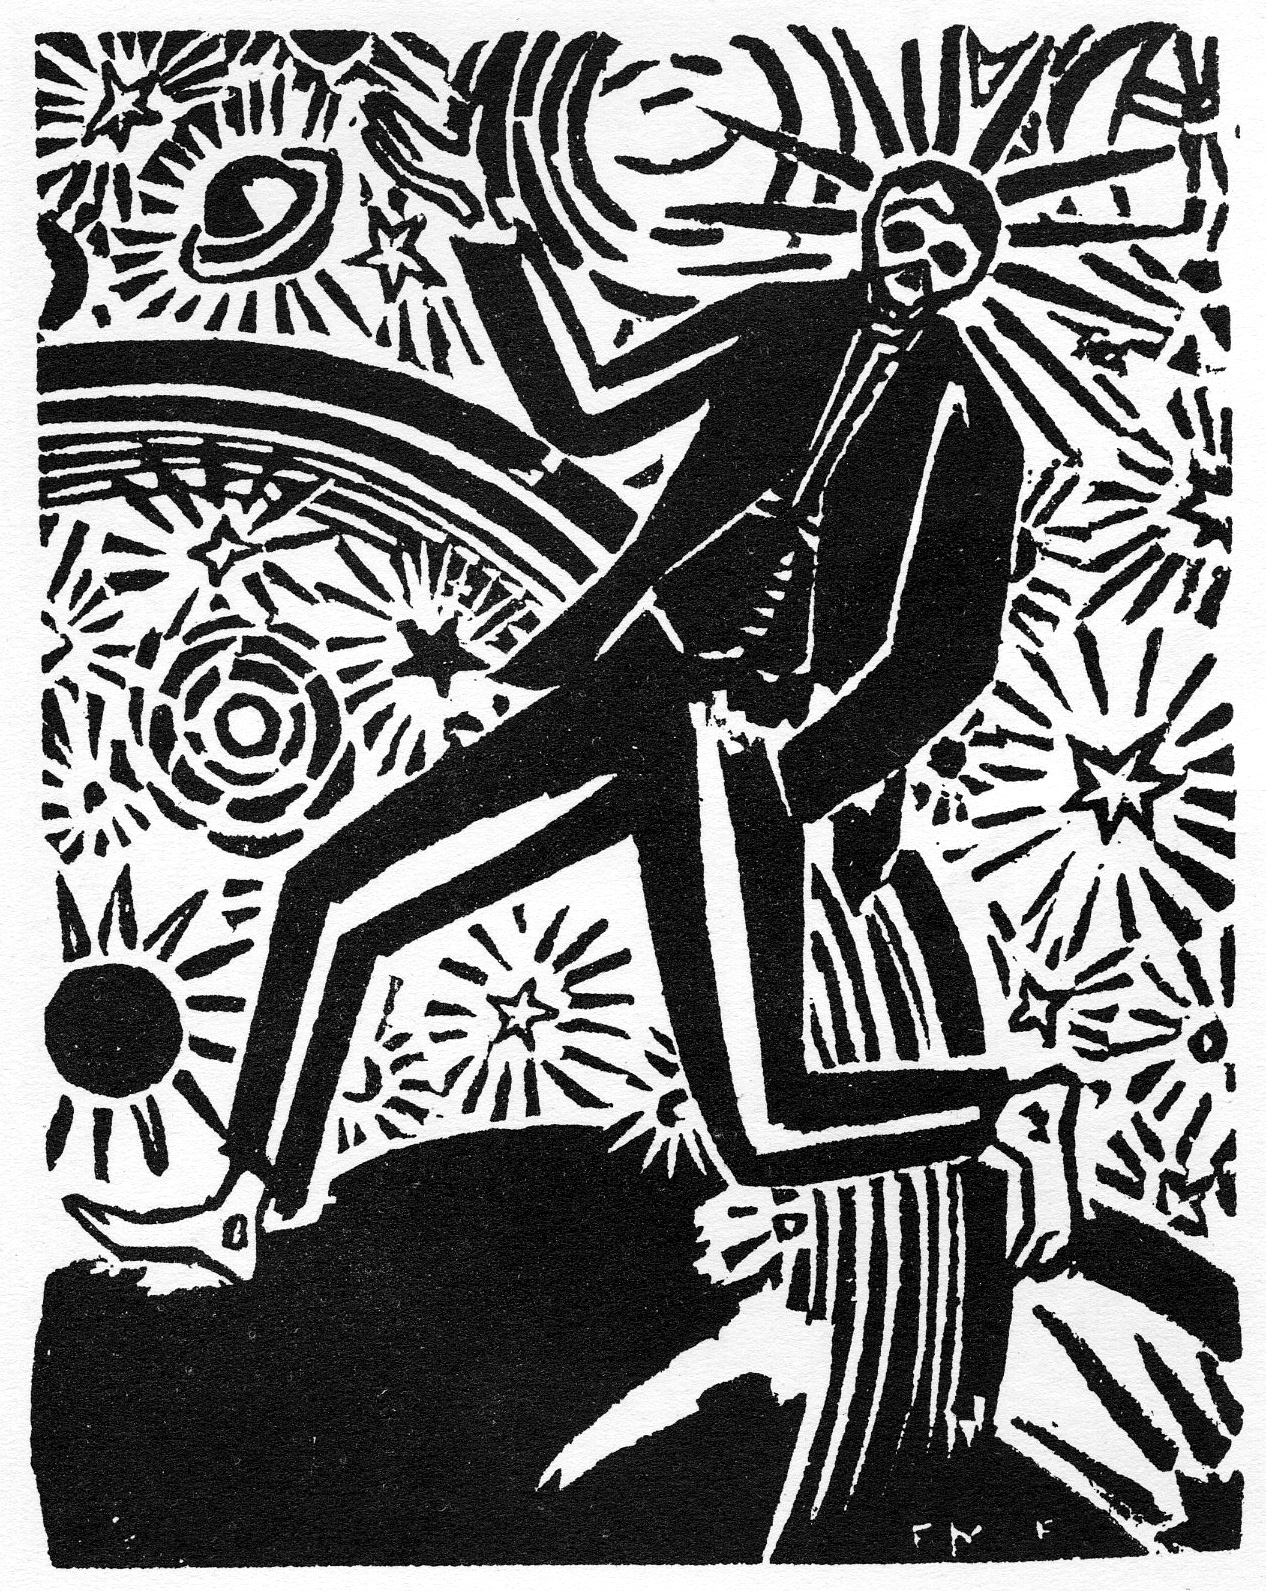 Black-and-white illustration of a skeleton or spirit sauntering happily through space, From Frans Masereel's My Book of Hours, published in 1919